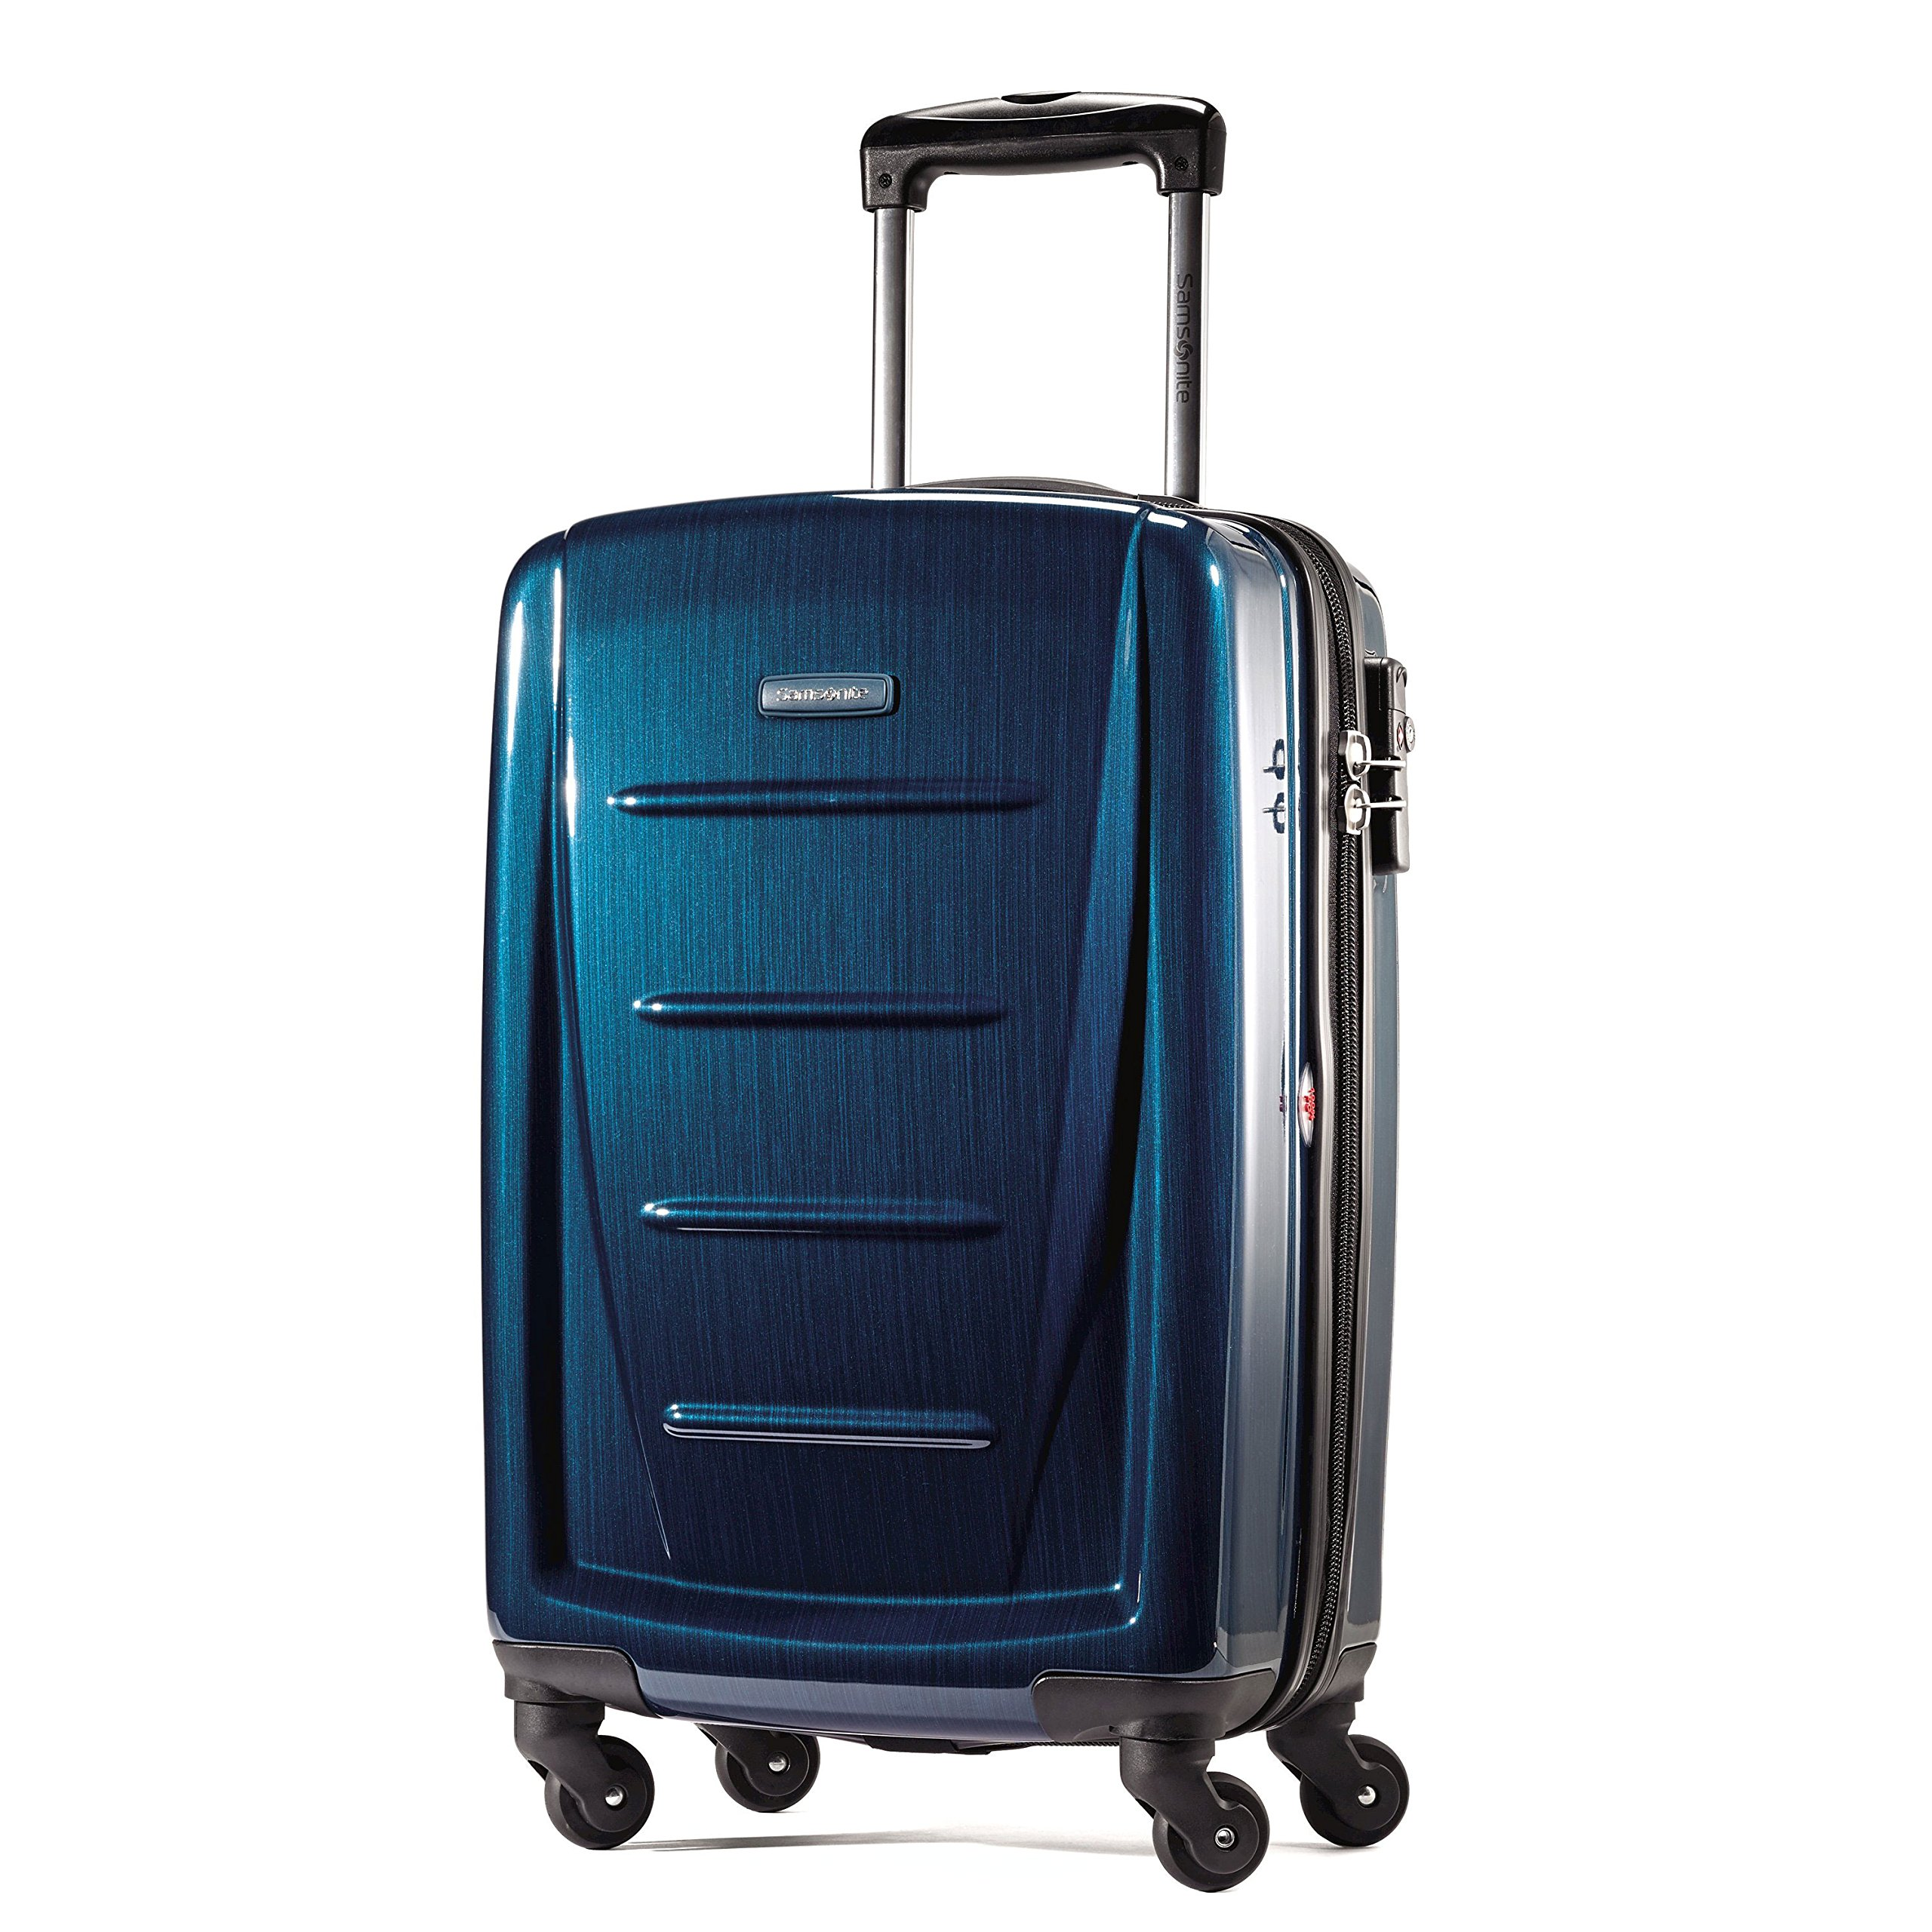 Samsonite Winfield 2 Hardside 20'' Luggage, Deep Blue